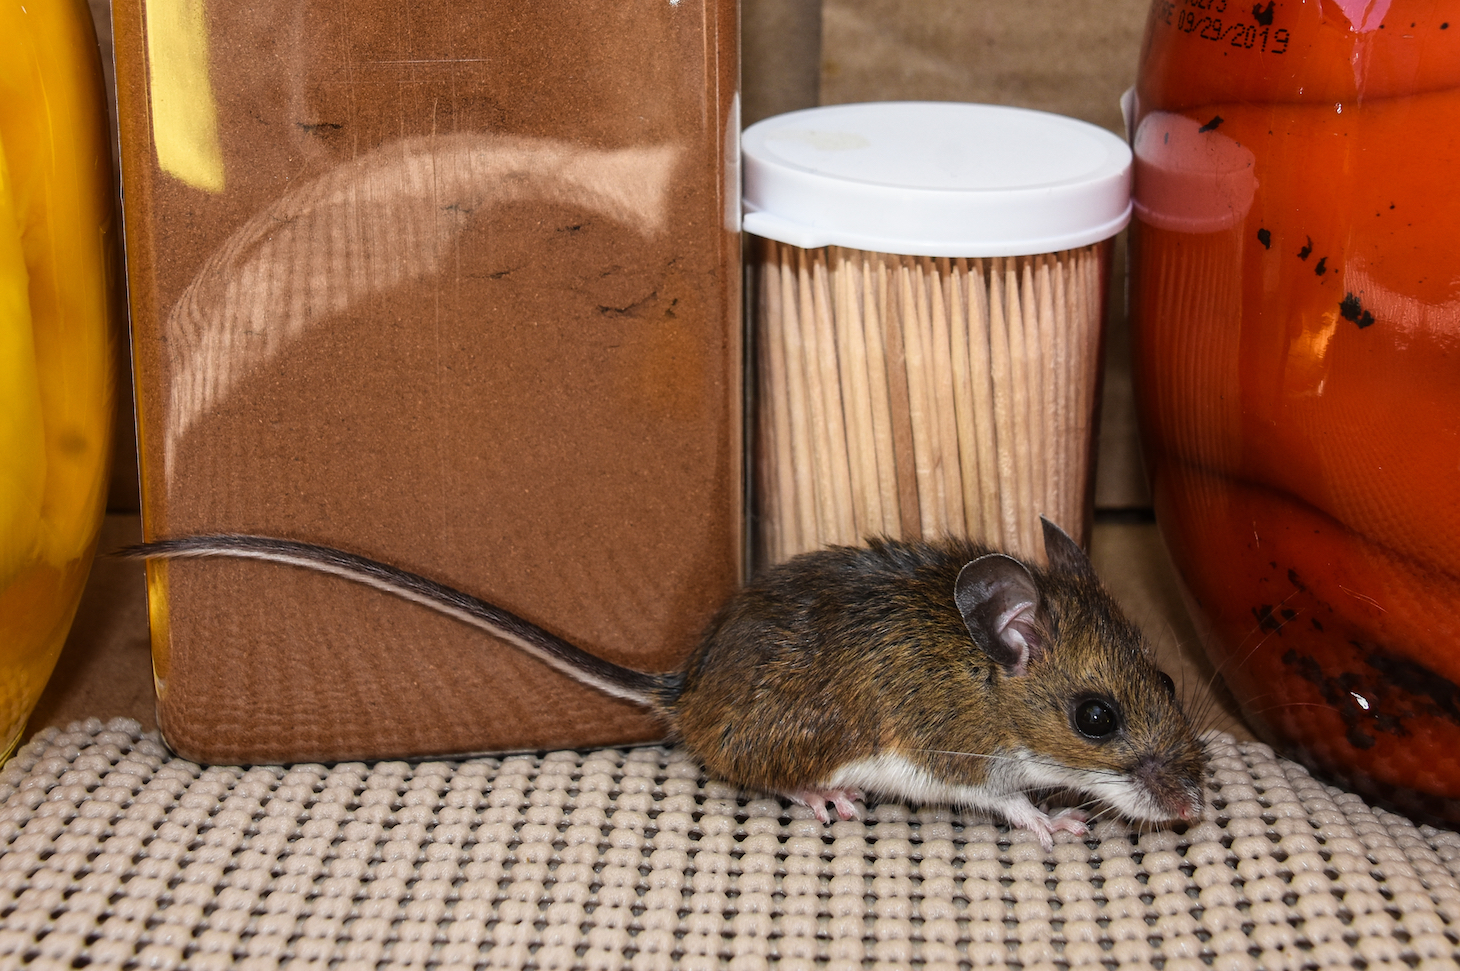 A new study has found that mice in New York City carry potentially harmful disease-causing gastrointestinal bacteria which may be resistant to antibiotics.